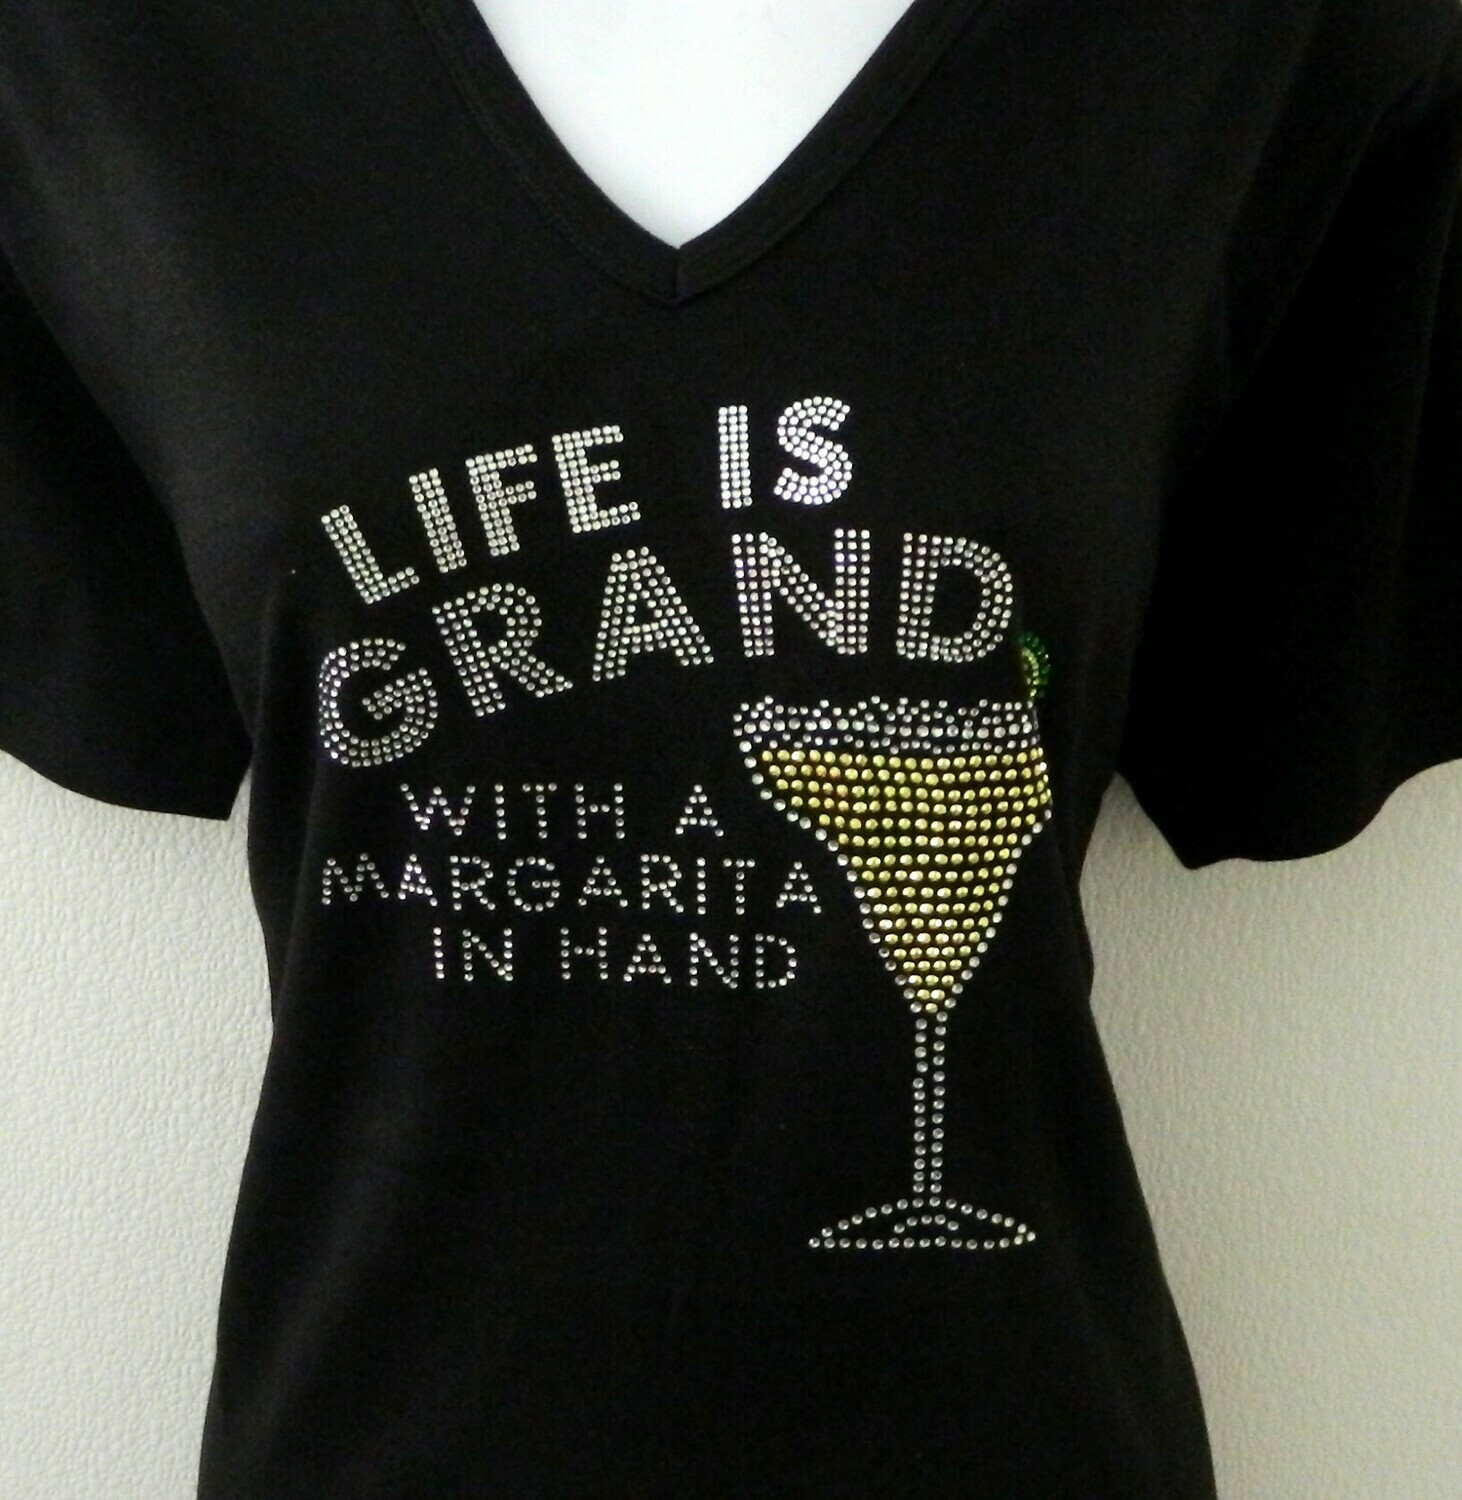 LIFE IS GRAND -with a Margarita in Hand